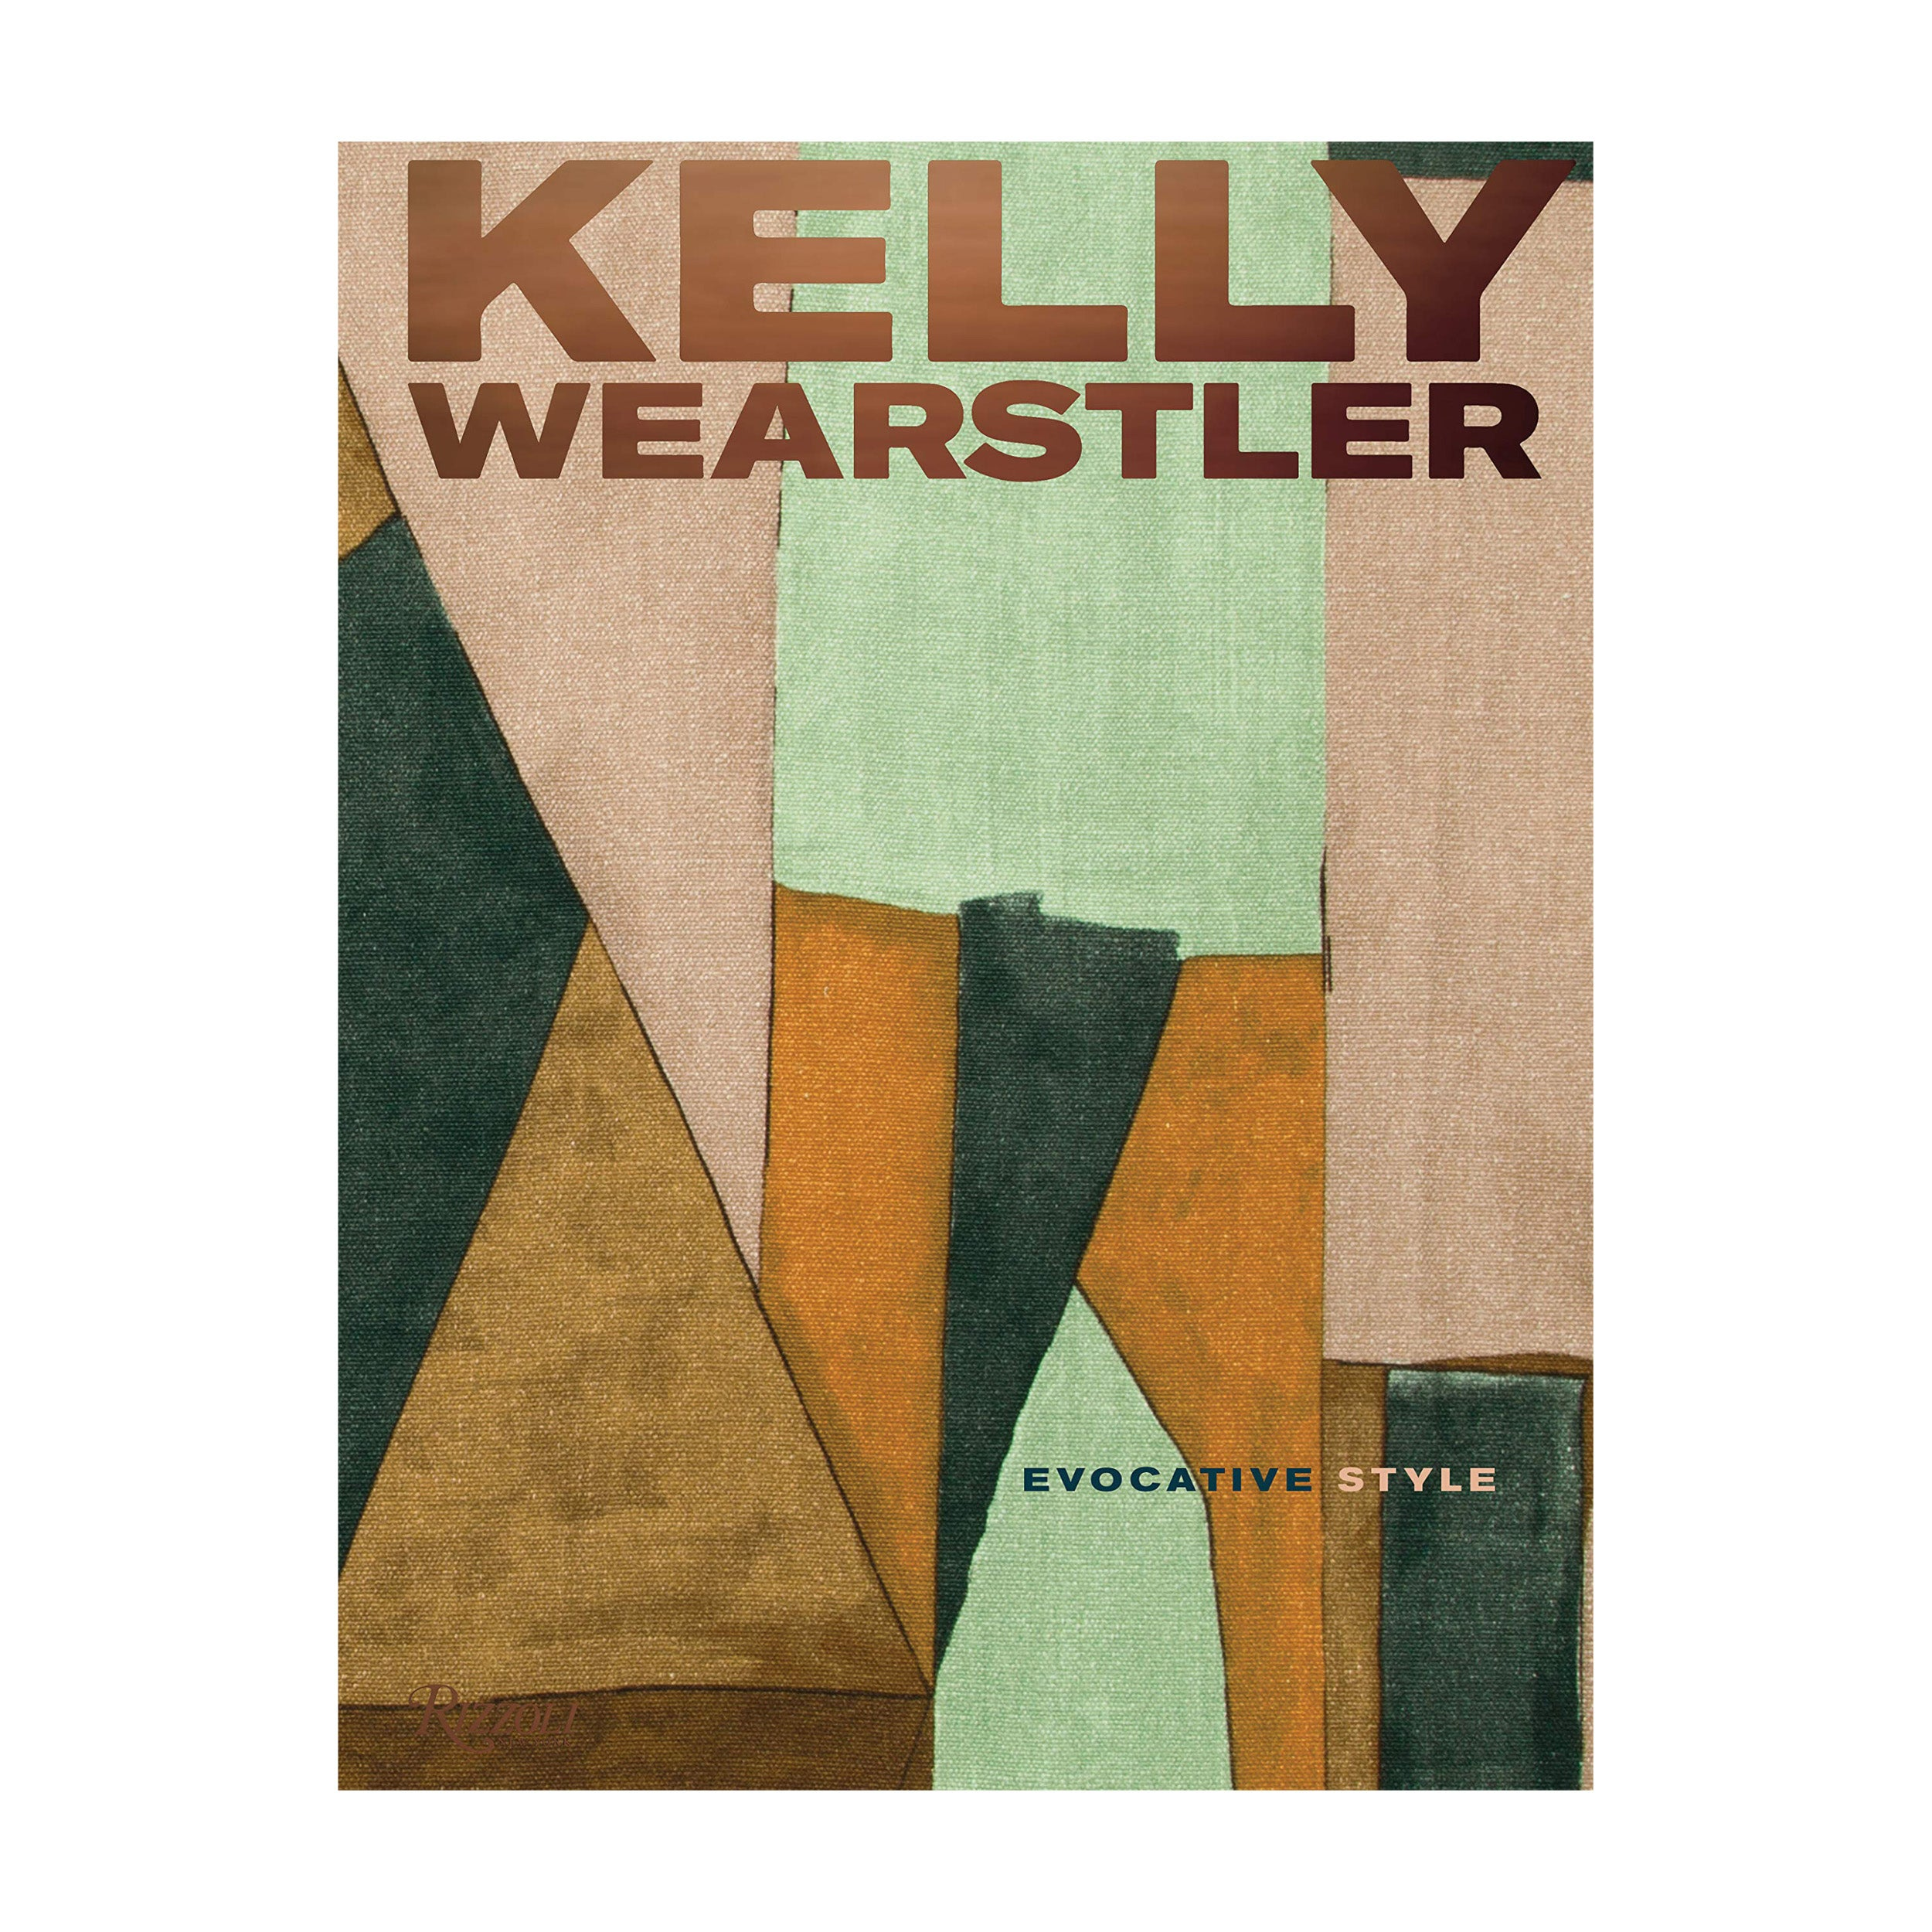 Kelly Wearstler. Evocative Style